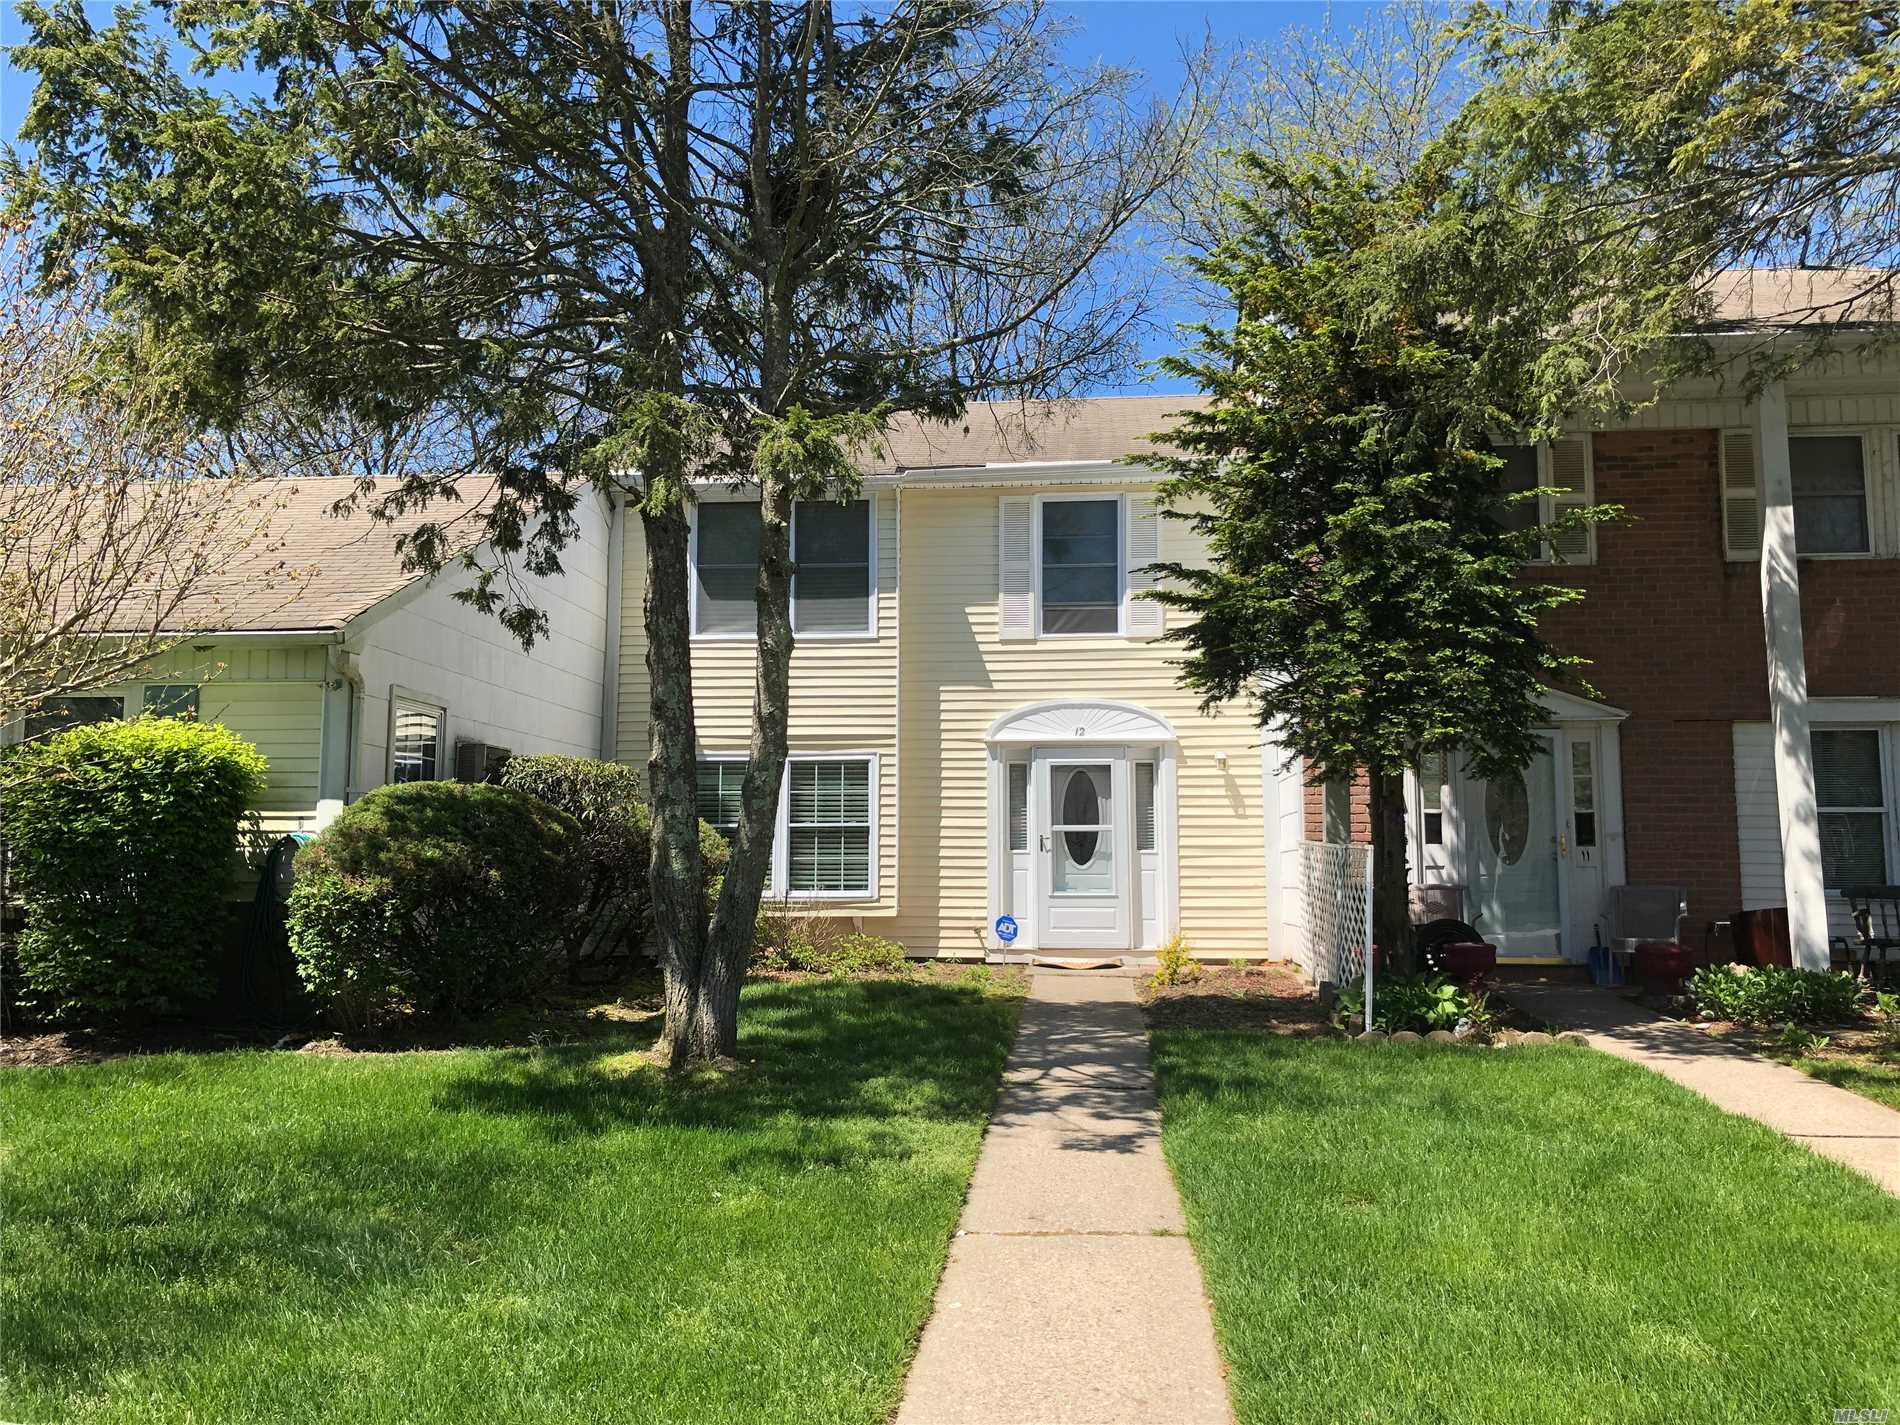 All new hard wood floors. No carpets. Private patio. 2 car private driveway. In Strathmore club house amenities. Pool, basketball, tennis & playground.